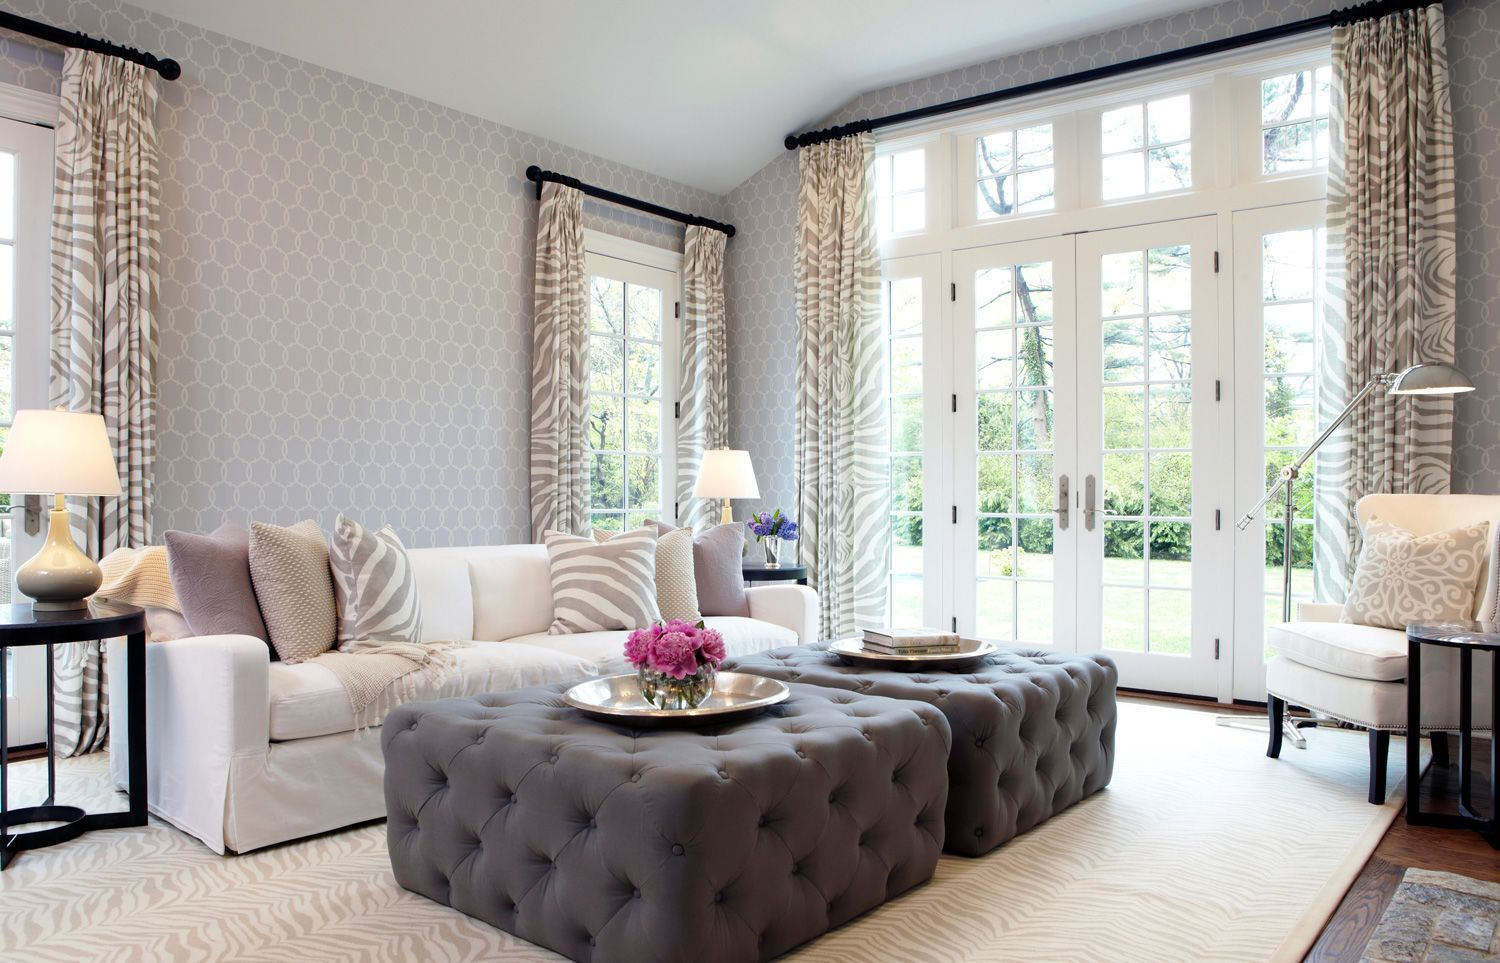 Wallpaper makes a soft statement in this eclectic living room design ...